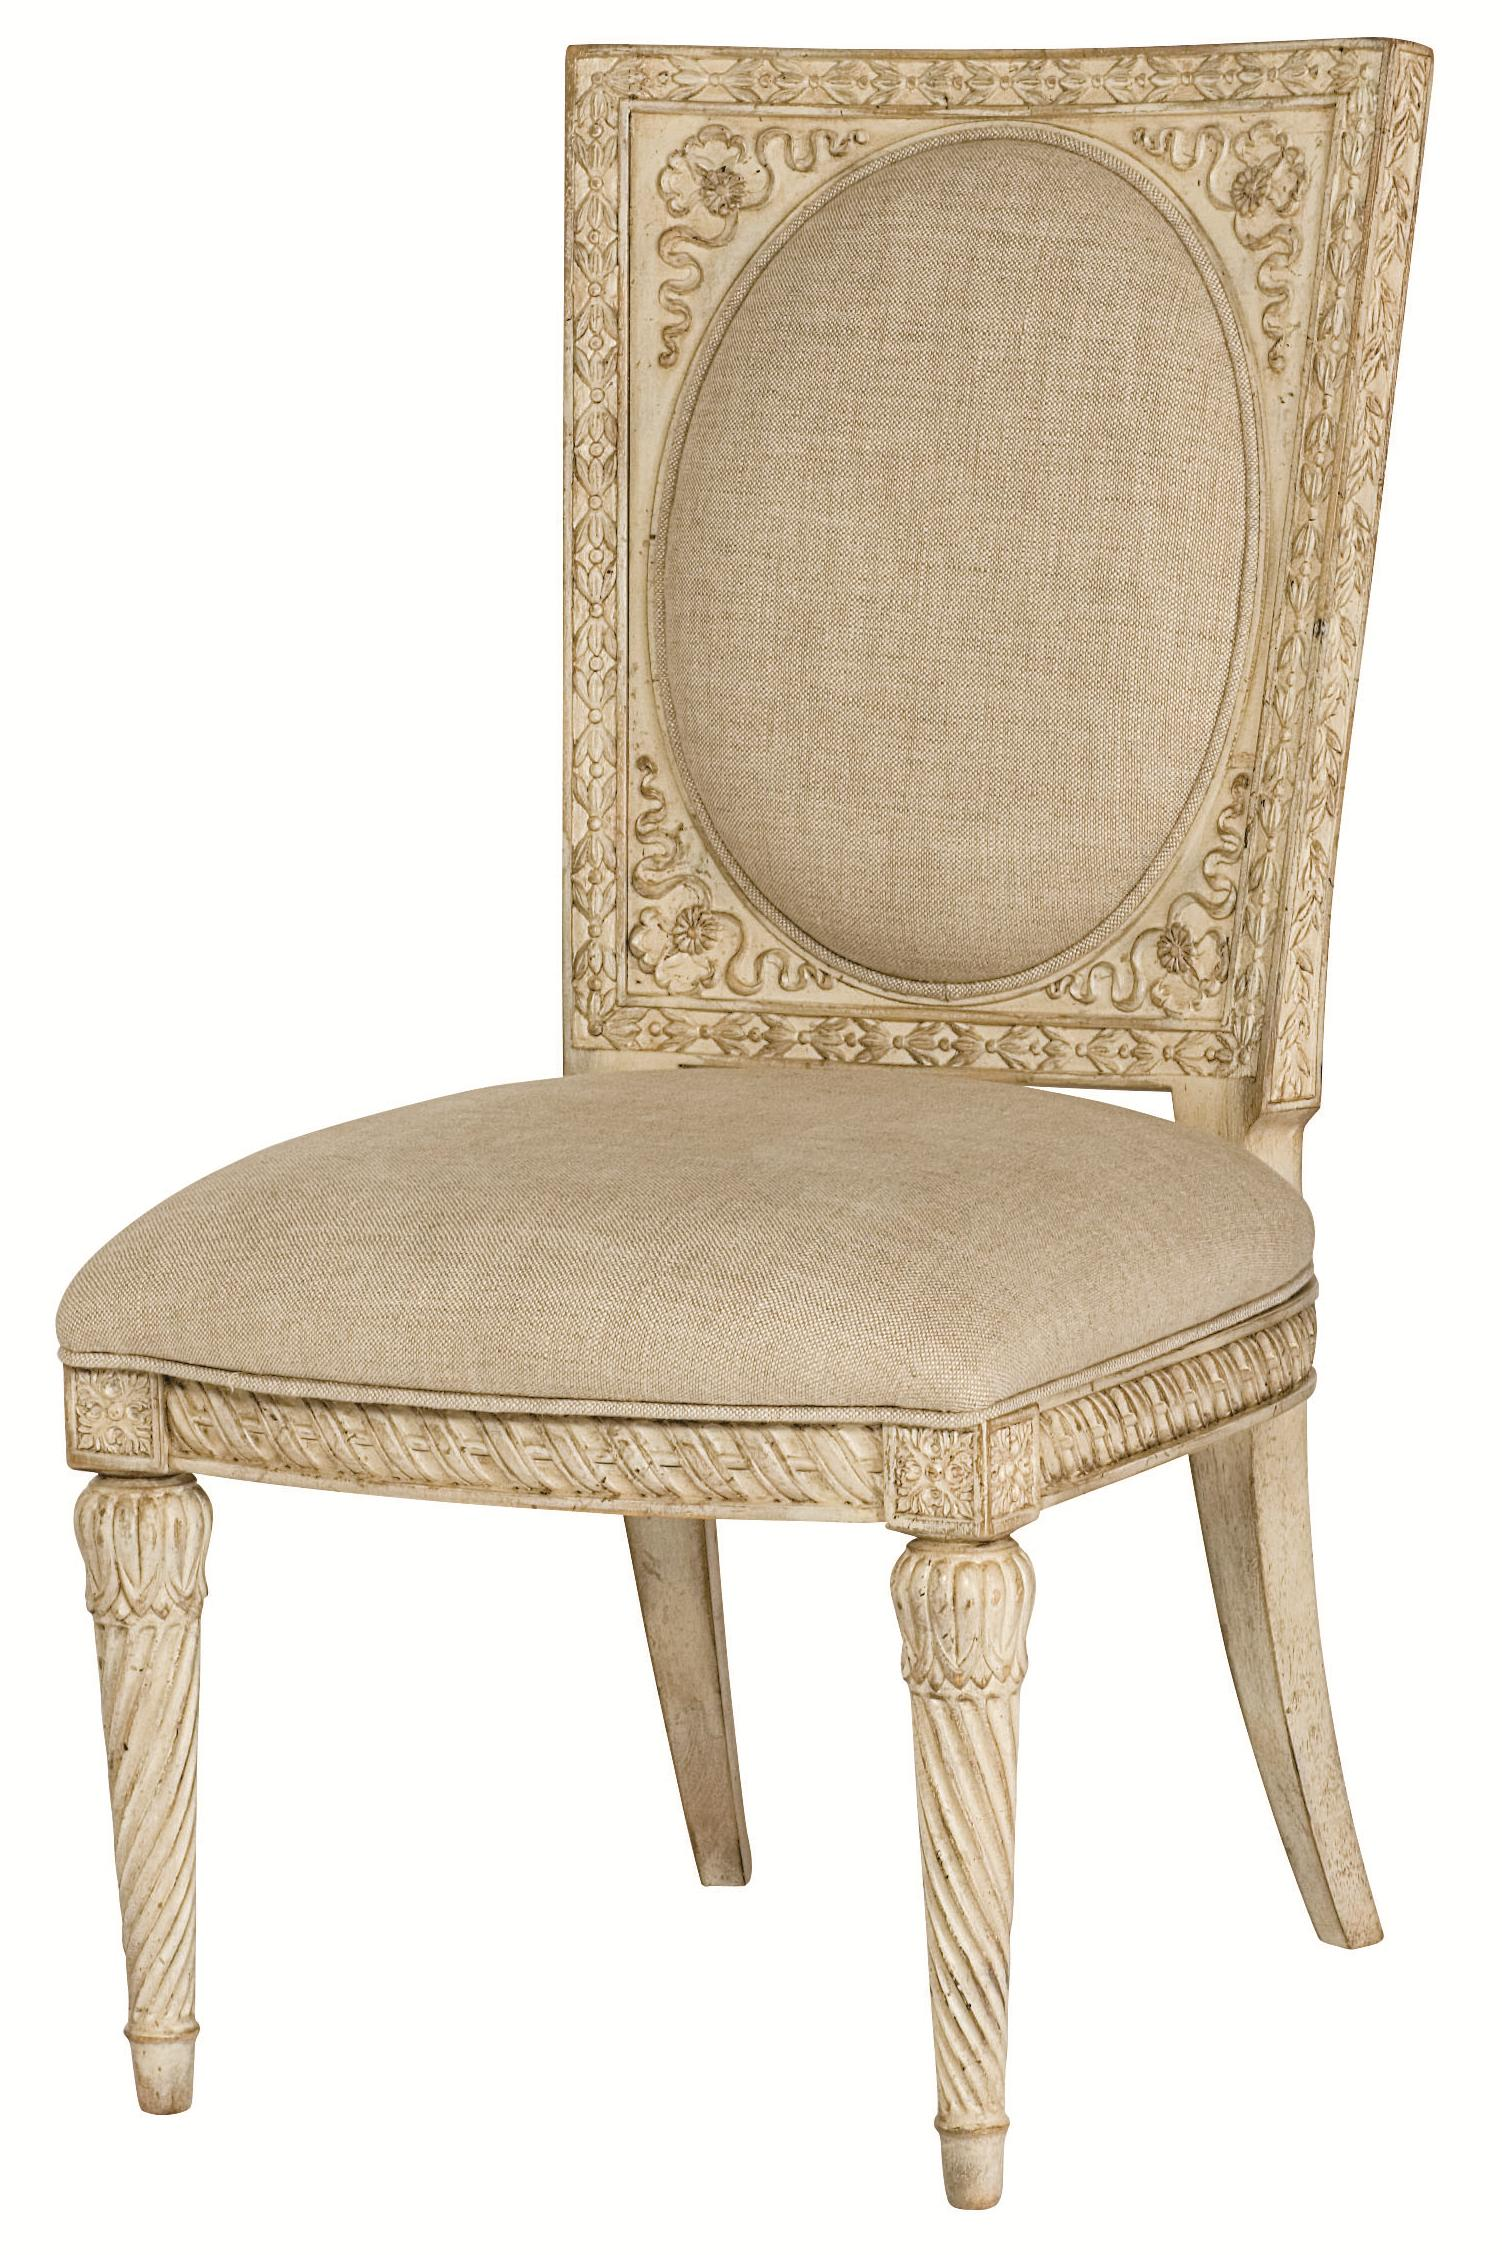 Cane Back Accent Chair with Upholstery by American Drew